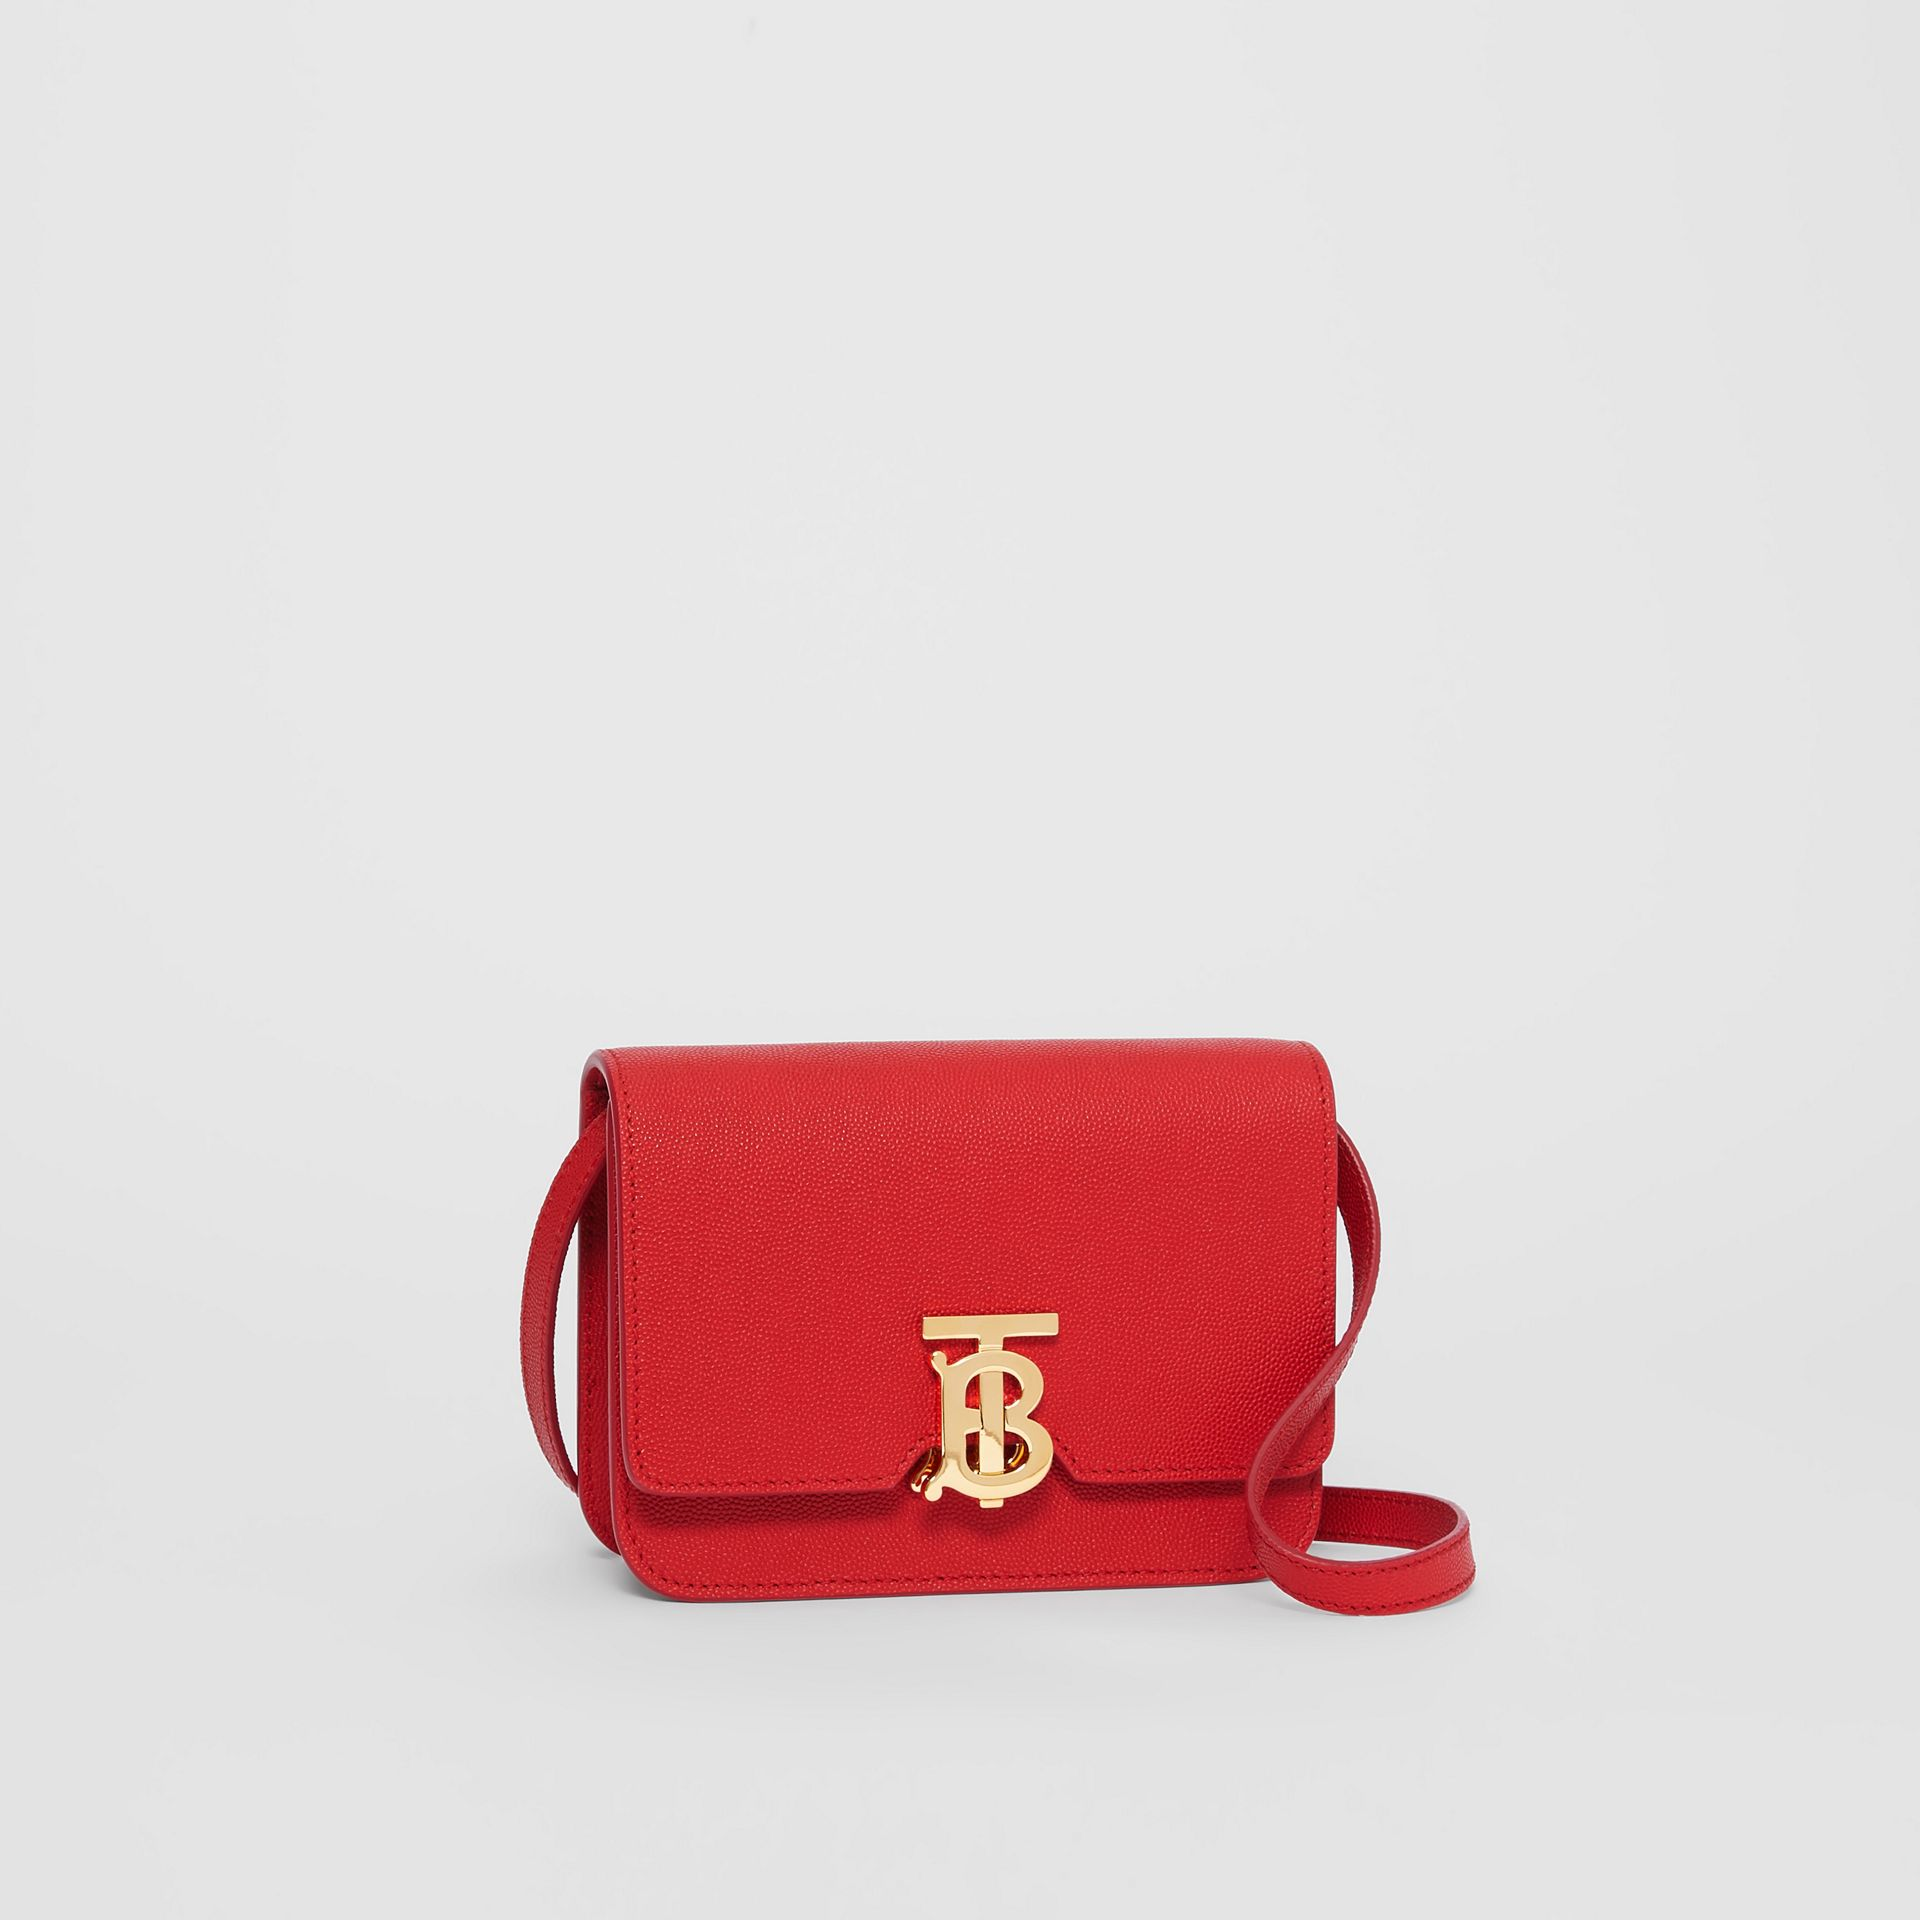 Mini Grainy Leather TB Bag in Bright Red - Women | Burberry Hong Kong S.A.R. - gallery image 6